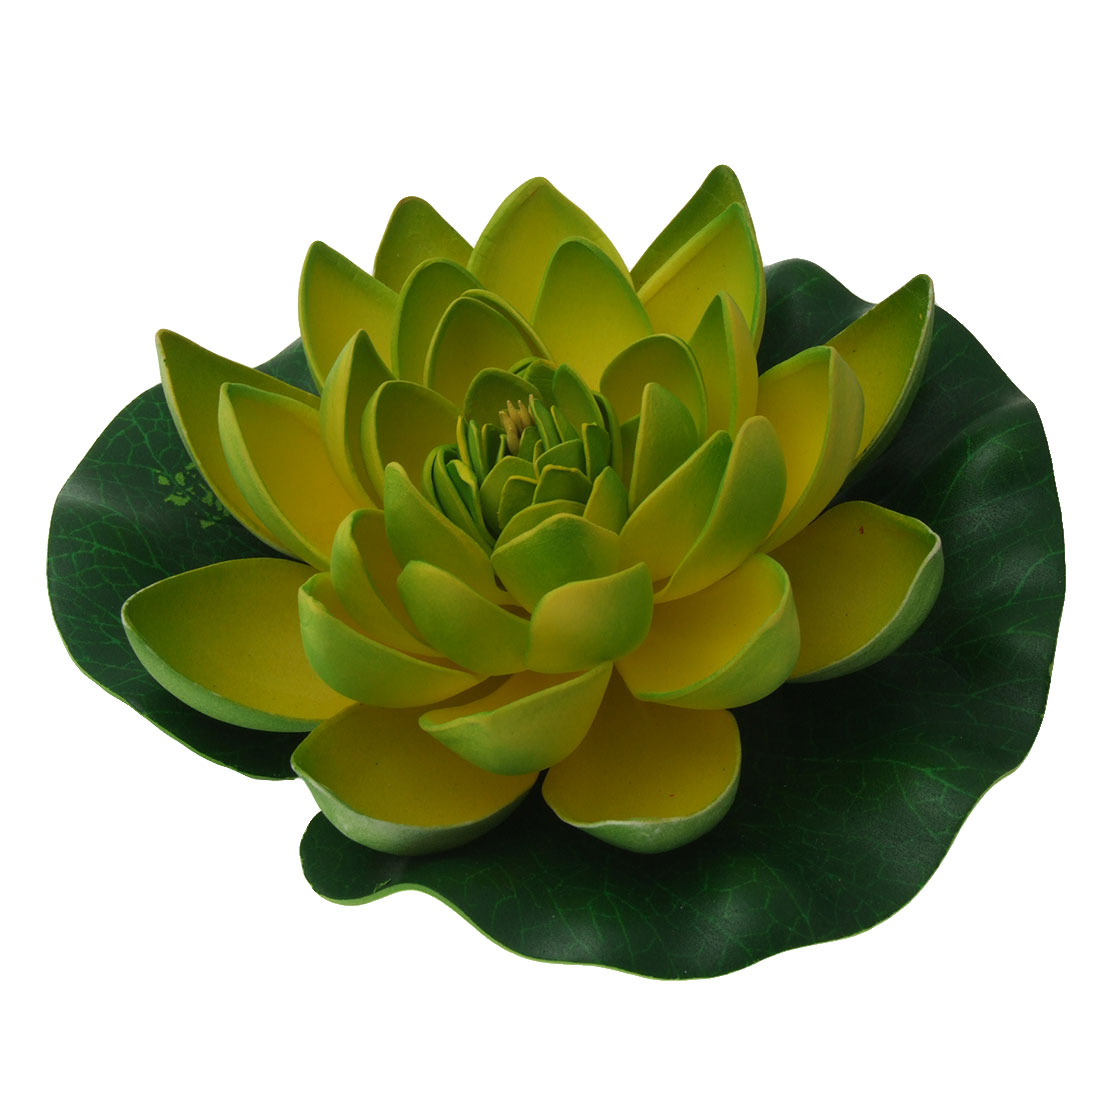 Foam Lotus Flower Decor Ornament for Fish Tank Aquarium